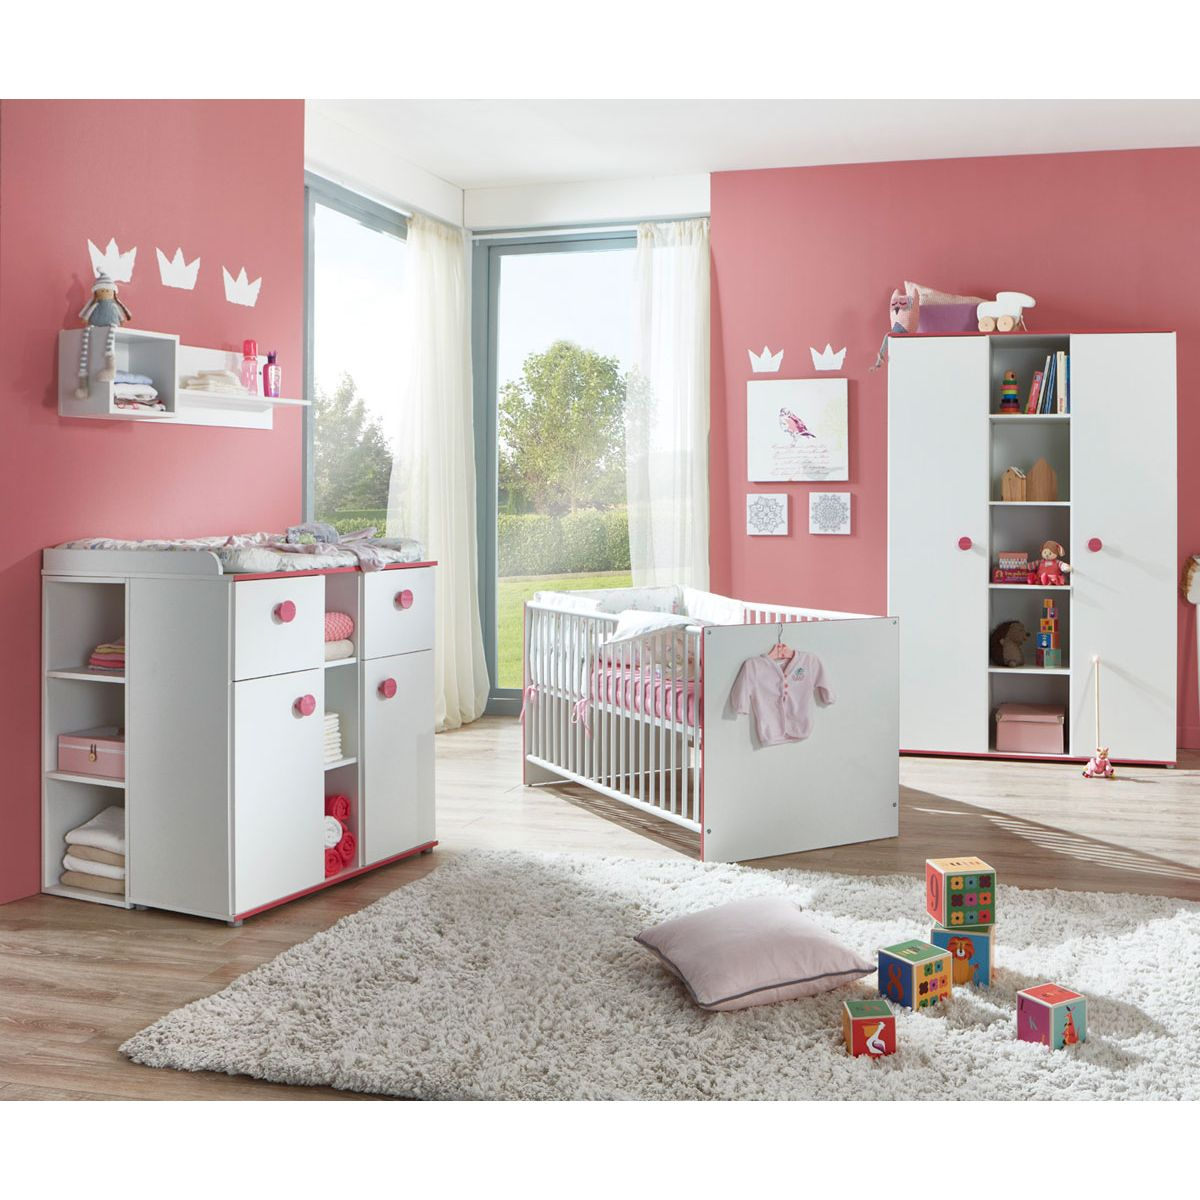 arthur berndt kinderzimmer jetzt g nstig kaufen. Black Bedroom Furniture Sets. Home Design Ideas